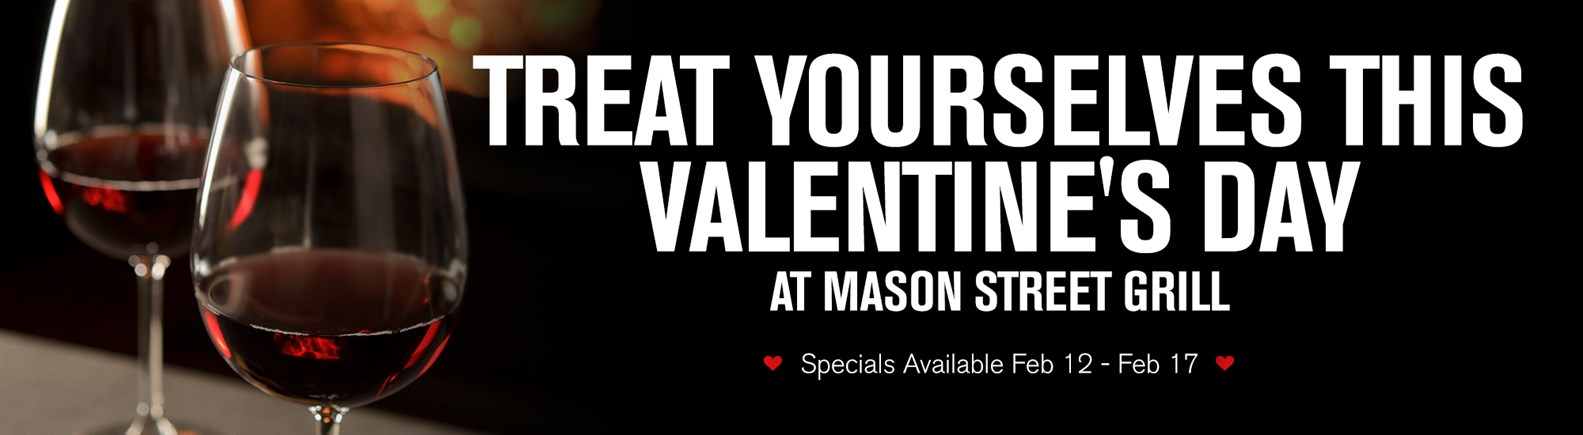 https://assets.marcusapps.com/files/outlets//mason-street/events/MSG_ValentinesDayGraphic_2000x550.jpg?width=1583&height=400&mode=crop